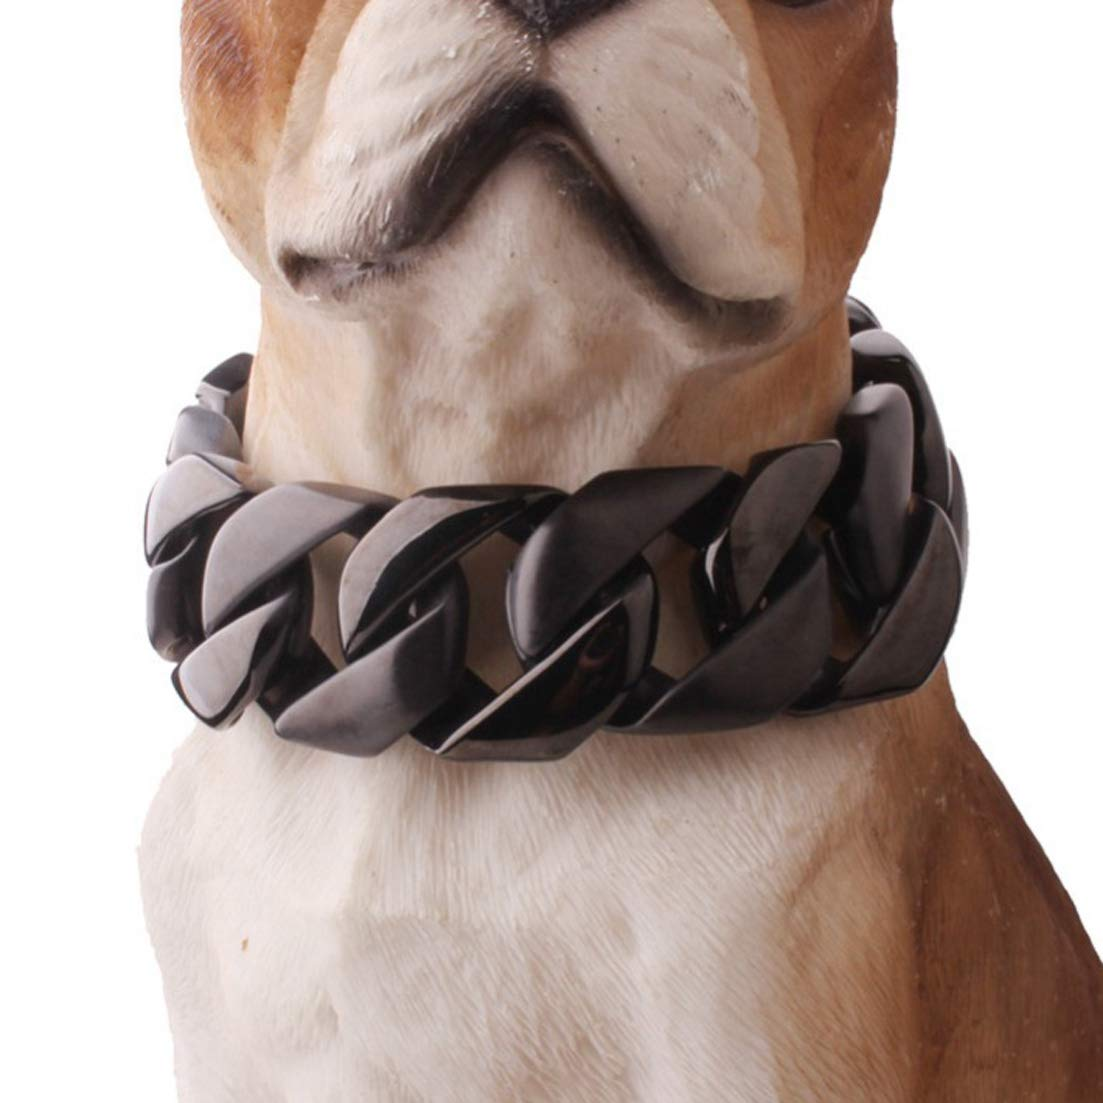 FML PET Premium 316L Stainless Steel Dog Training Choke Collar, 30mm Wide Cuban Chain Necklace for Pit Bull Mastiff Bulldog Big Breeds, Up to 680 lbs Dogs - Black